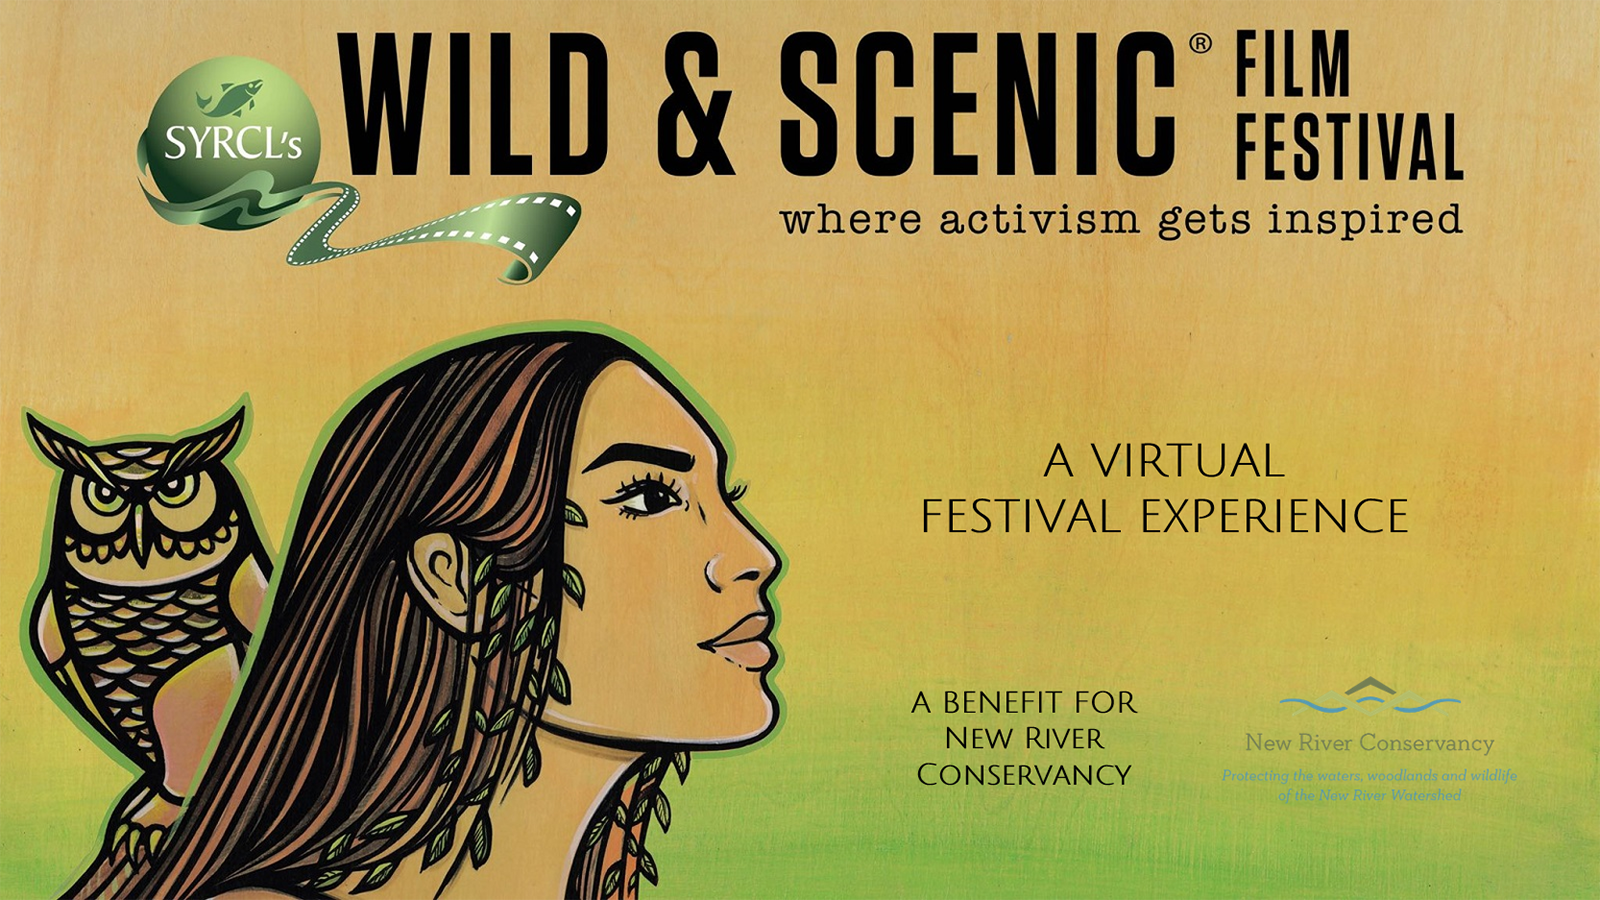 New River Conservancy Presents SYRCL's Wild & Scenic Film Festival On Tour